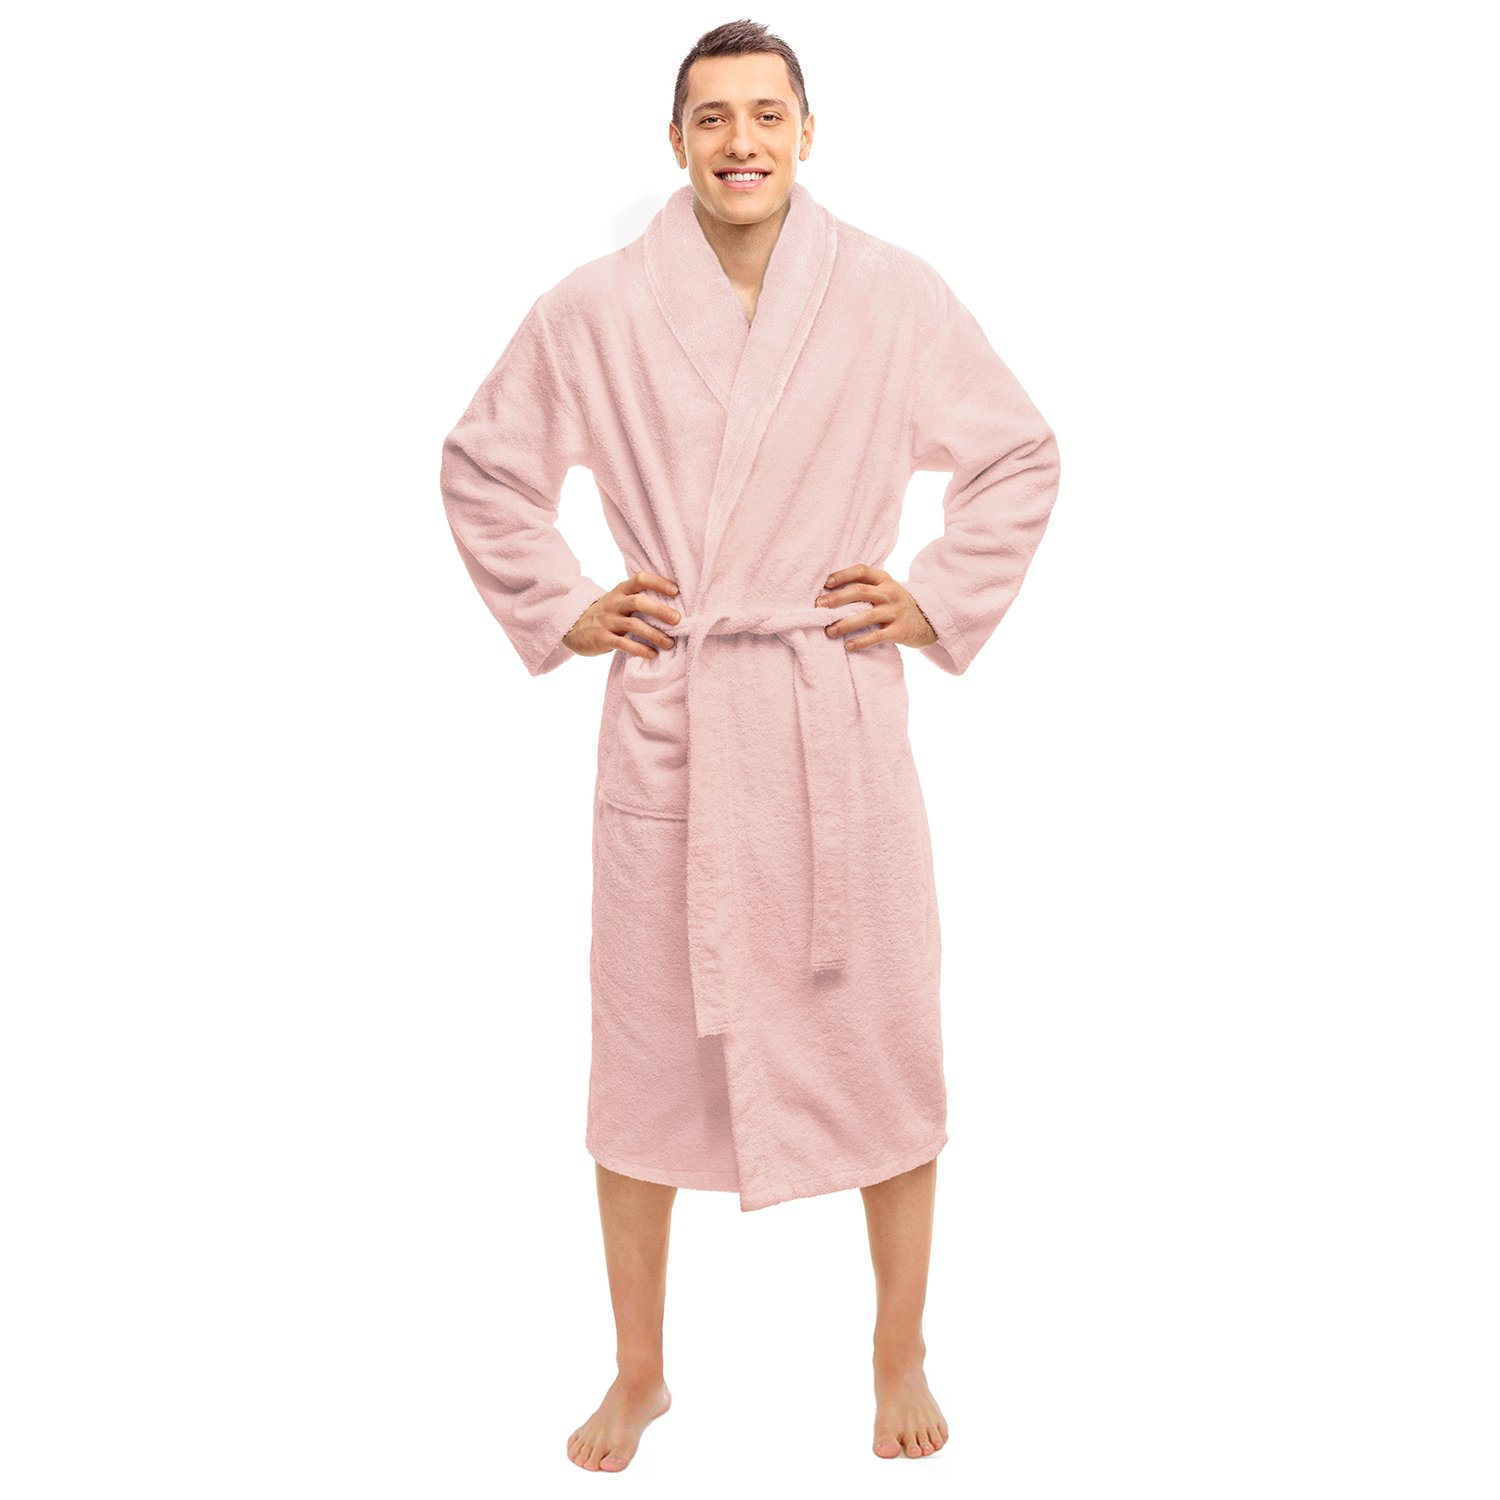 Blue Nile Mills Hotel & Spa Pink Robe, Plush Terry Weave, 100% Premium Long-Staple Combed Cotton, Unisex Bathrobe for Women and Men, Extra Large Size